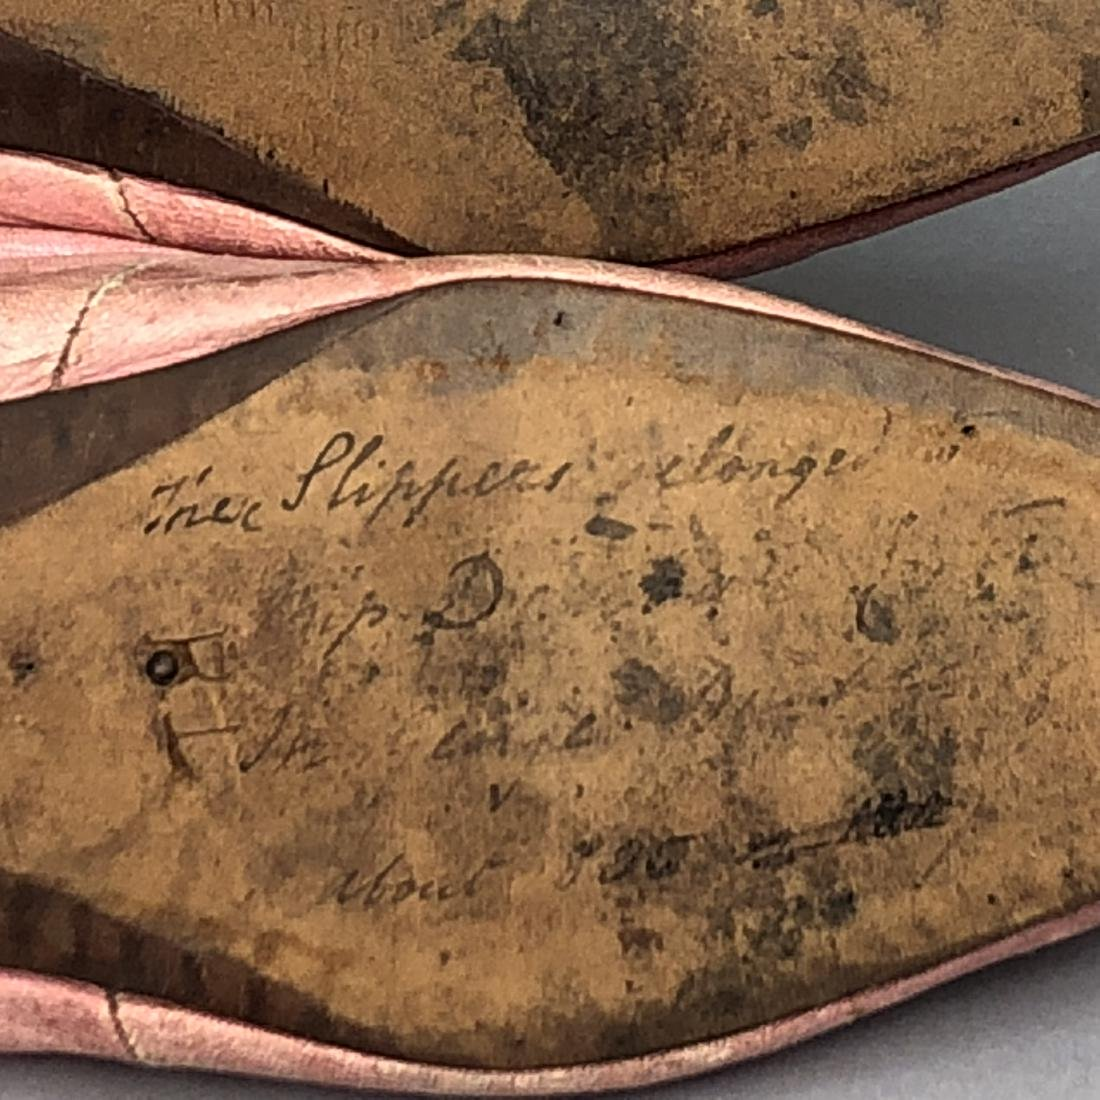 PINK KID SHOES with CORD DECORATION, LATE 1790s - 4